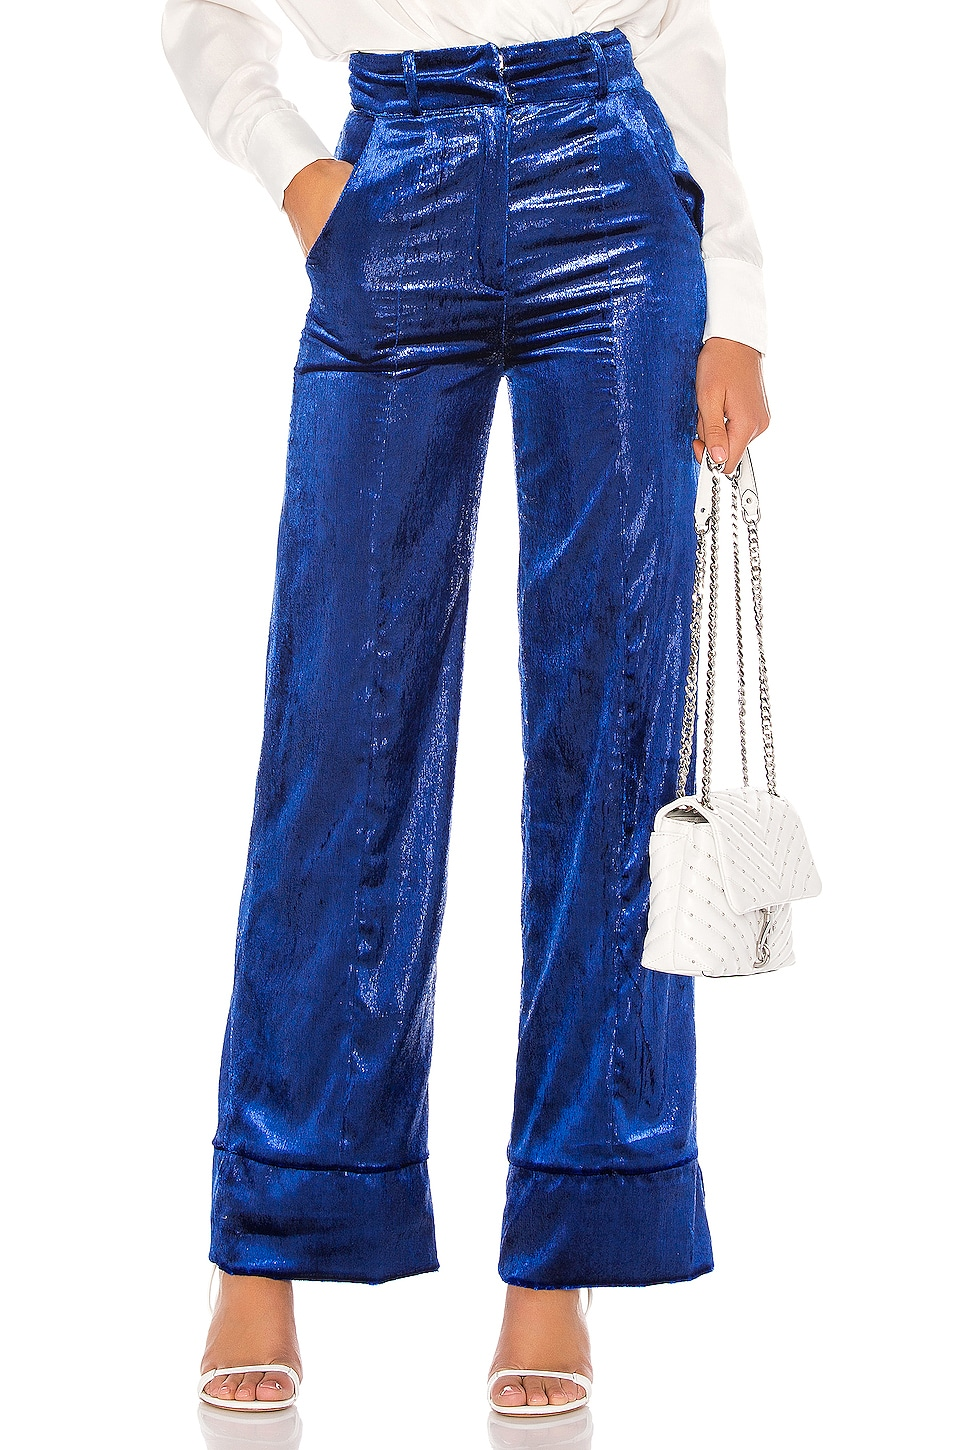 Lovers + Friends Zane Pant in Royal Blue